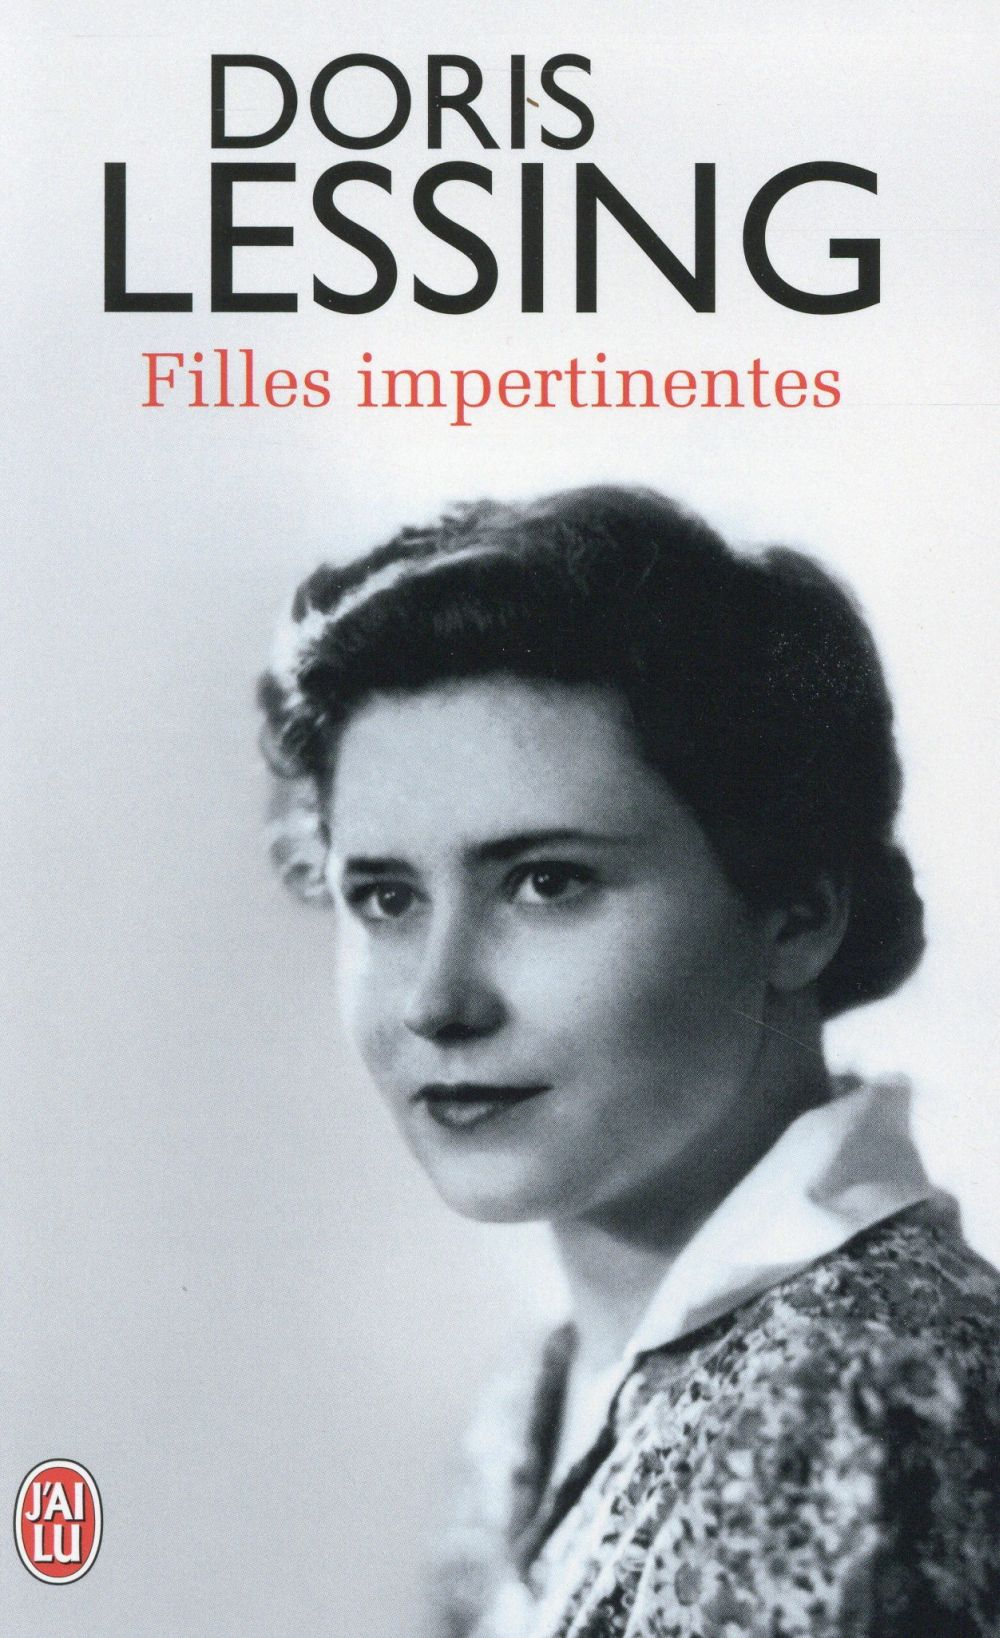 LITTERATURE ETRANGERE - 11036 - FILLES IMPERTINENTES Lessing Doris J'ai lu